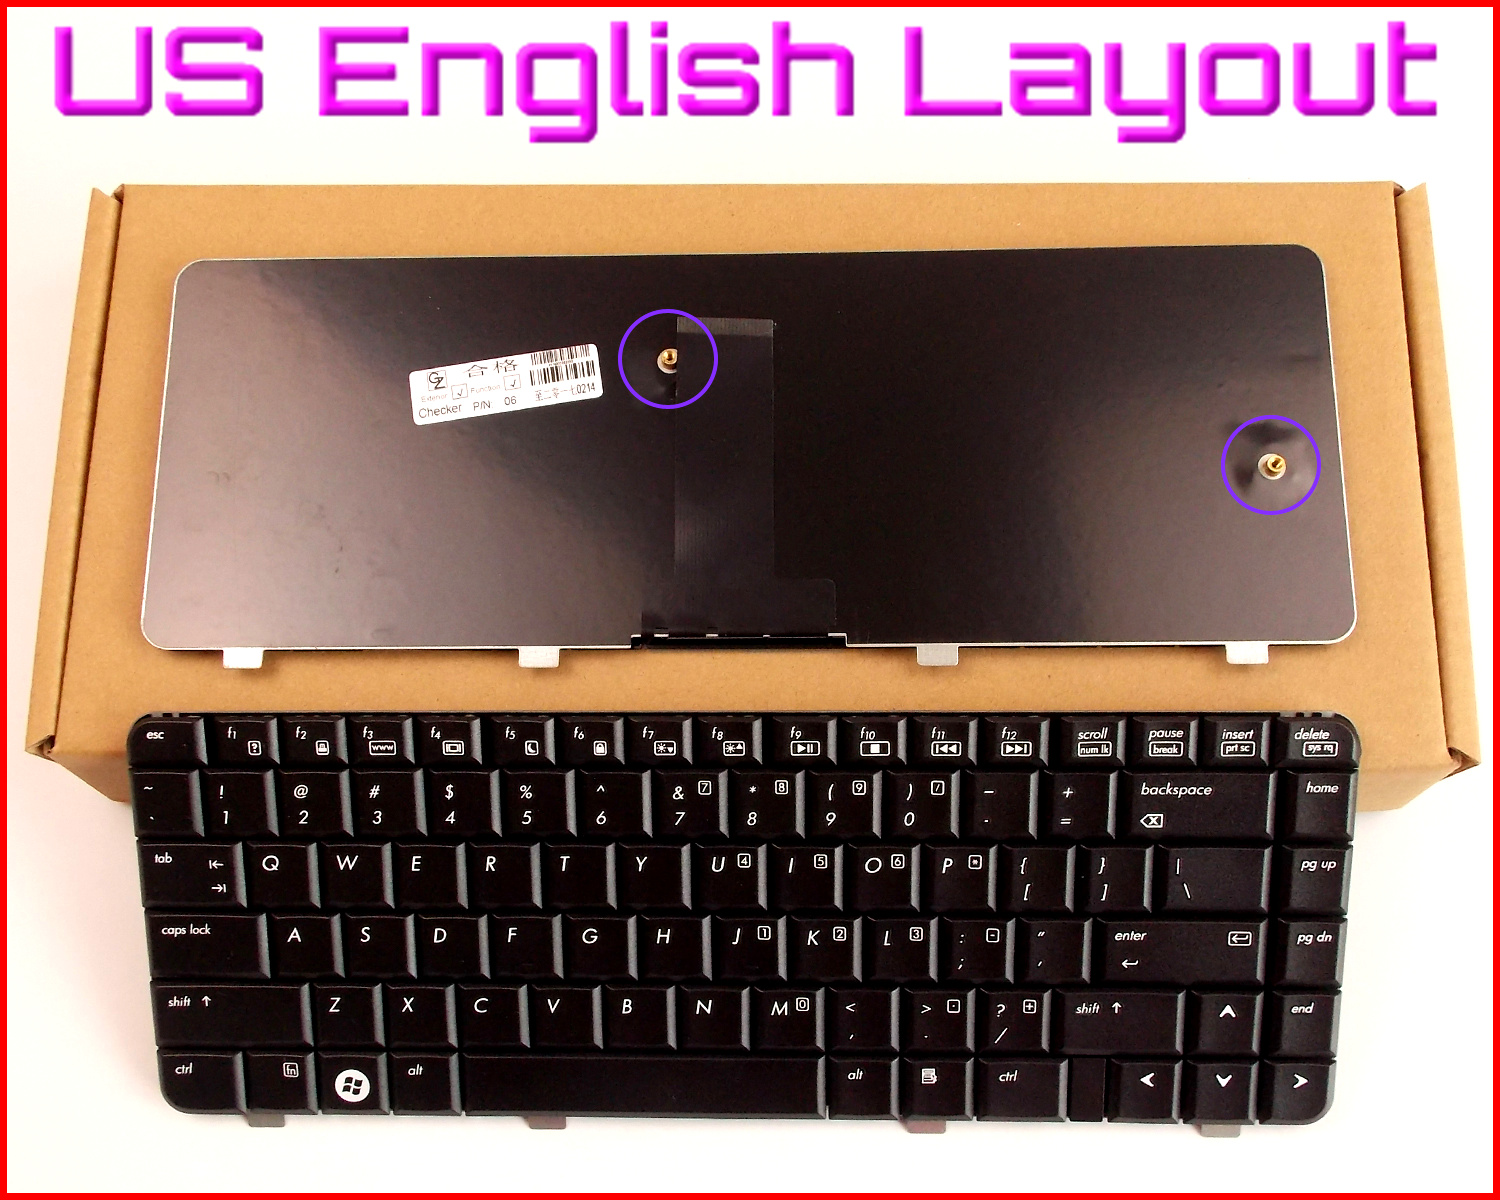 New Keyboard US English Version for HP/Compaq 540 541 550 6520 6520S 6720  6720S V061126AS1 455264-001 456624-001 Laptop